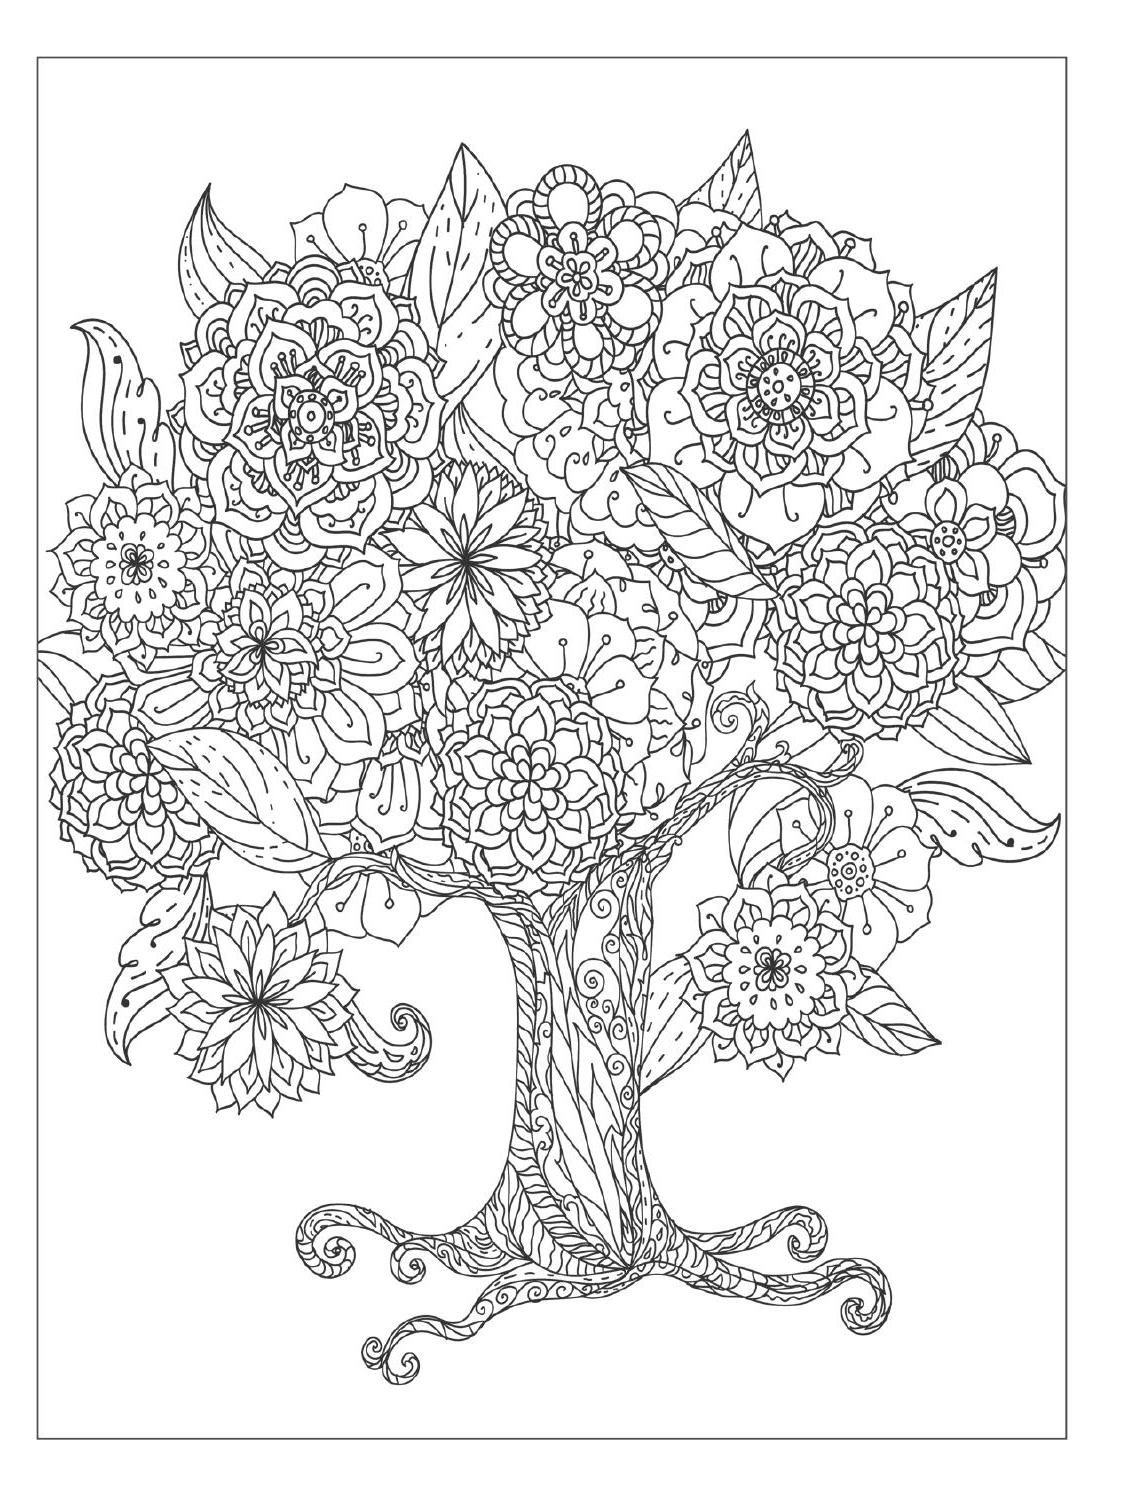 beautiful flowers coloring pages beautiful realistic flowers coloring page for kids flower coloring pages beautiful flowers